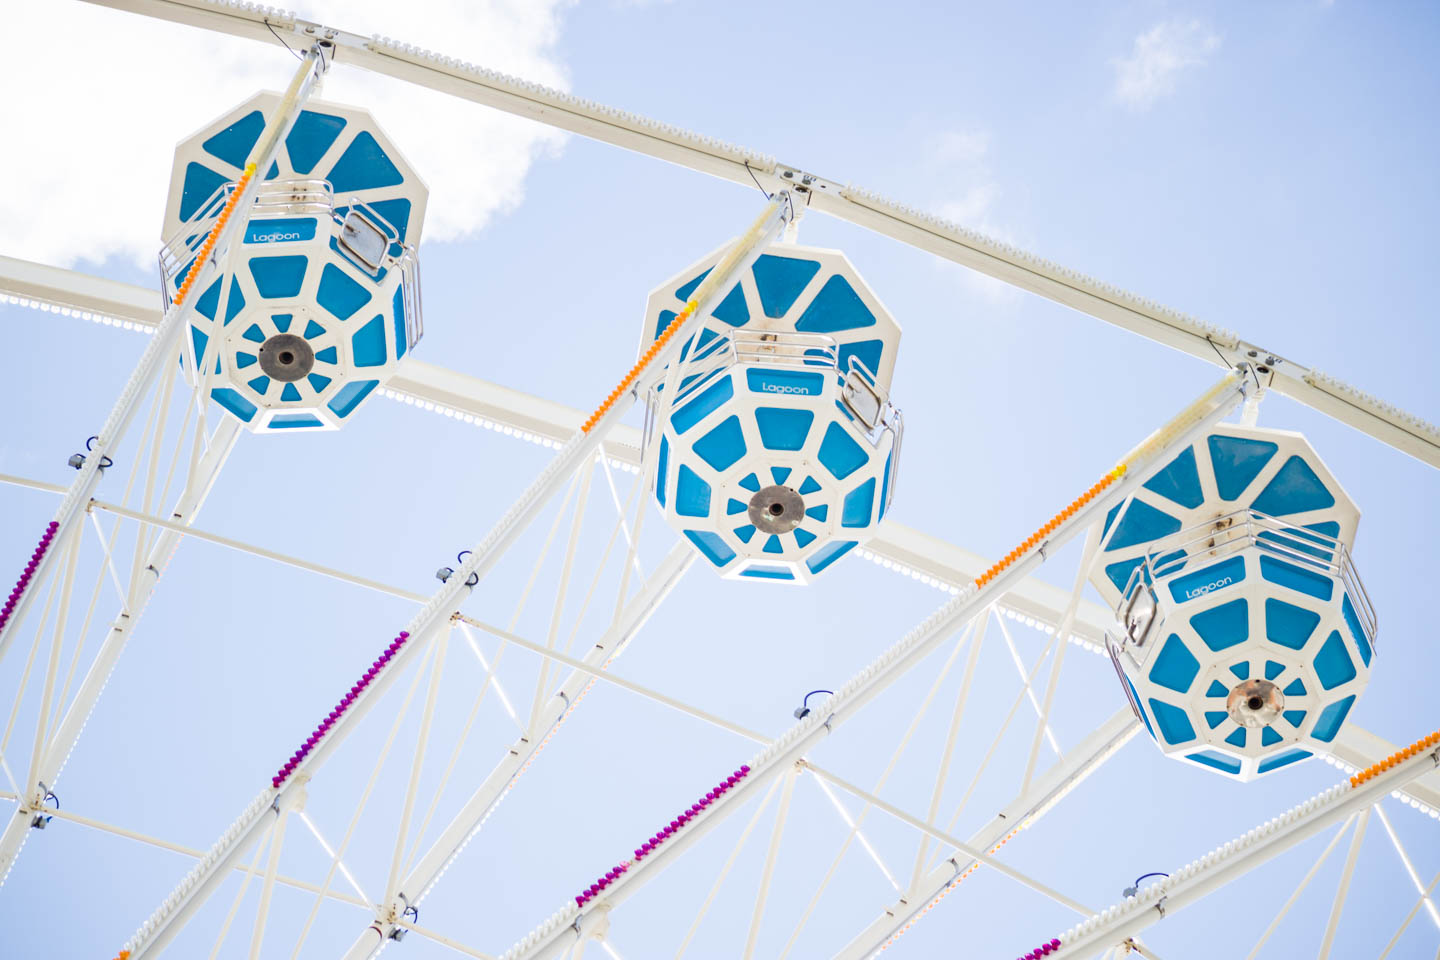 The ferris wheel at Lagoon